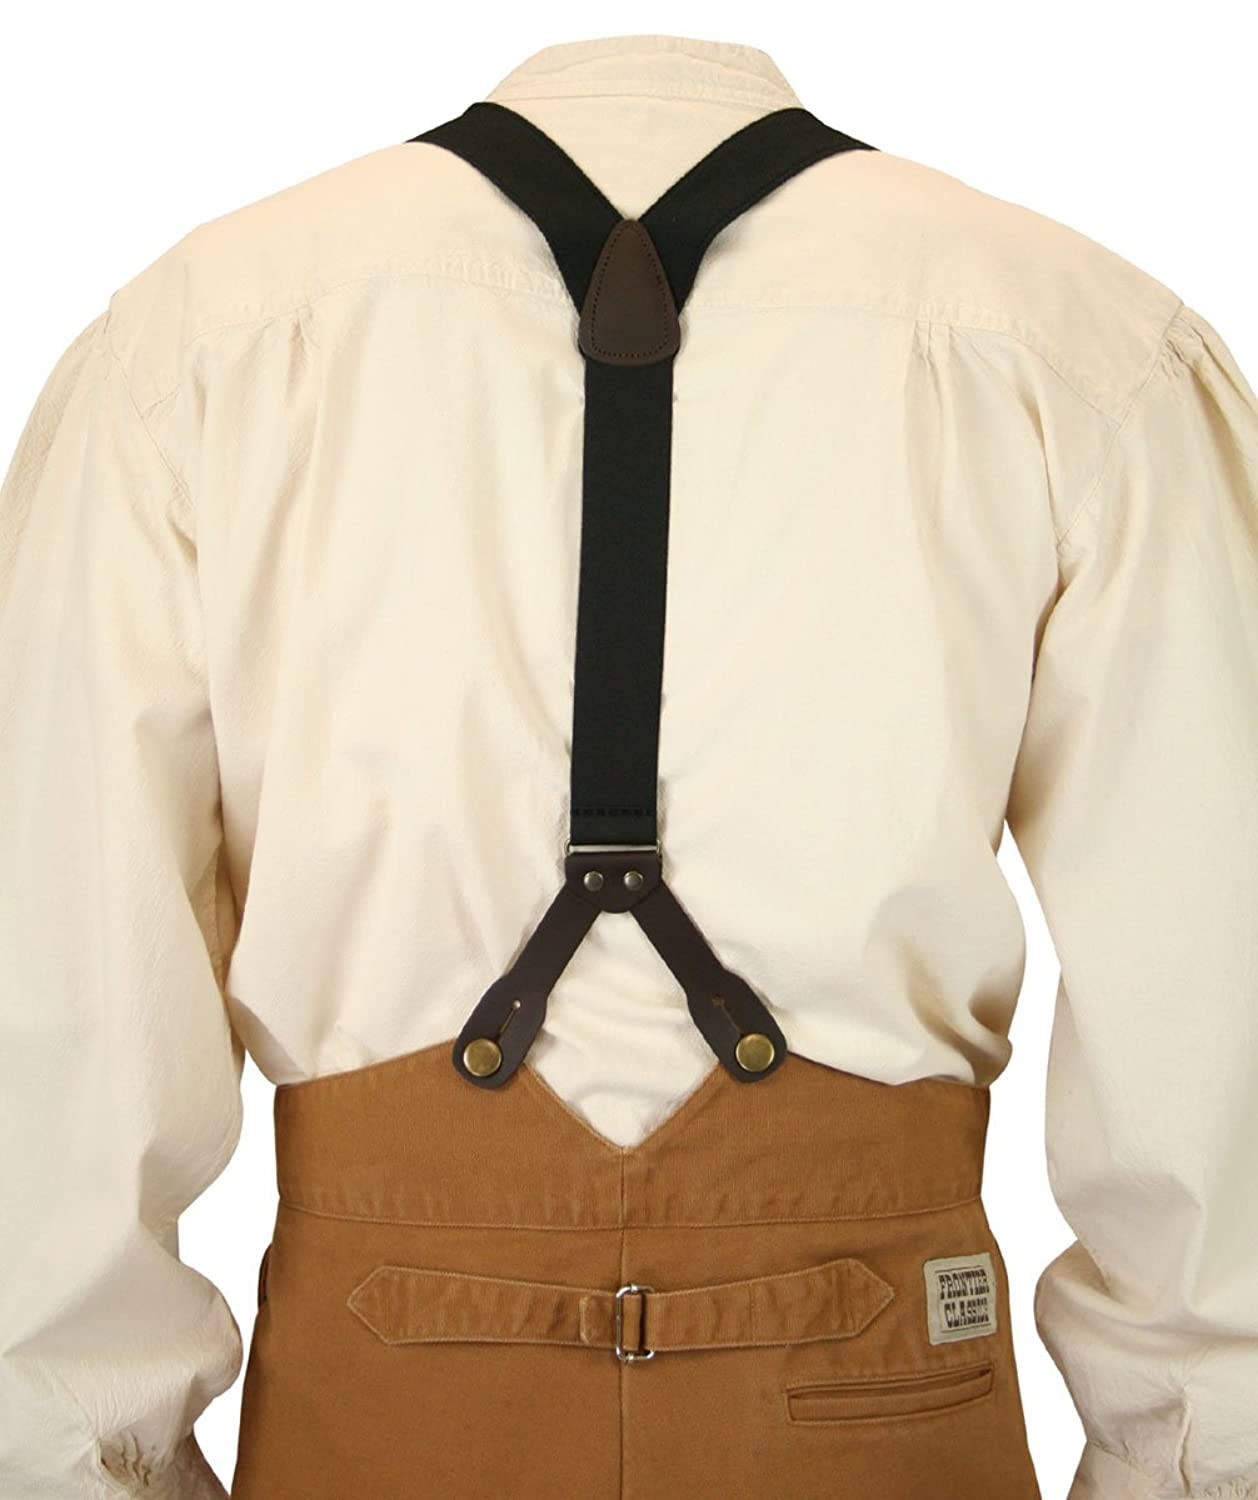 Edwardian Men's Pants, Trousers, Overalls Historical Emporium Mens Canvas Stagecoach Y-Back Suspenders $27.95 AT vintagedancer.com